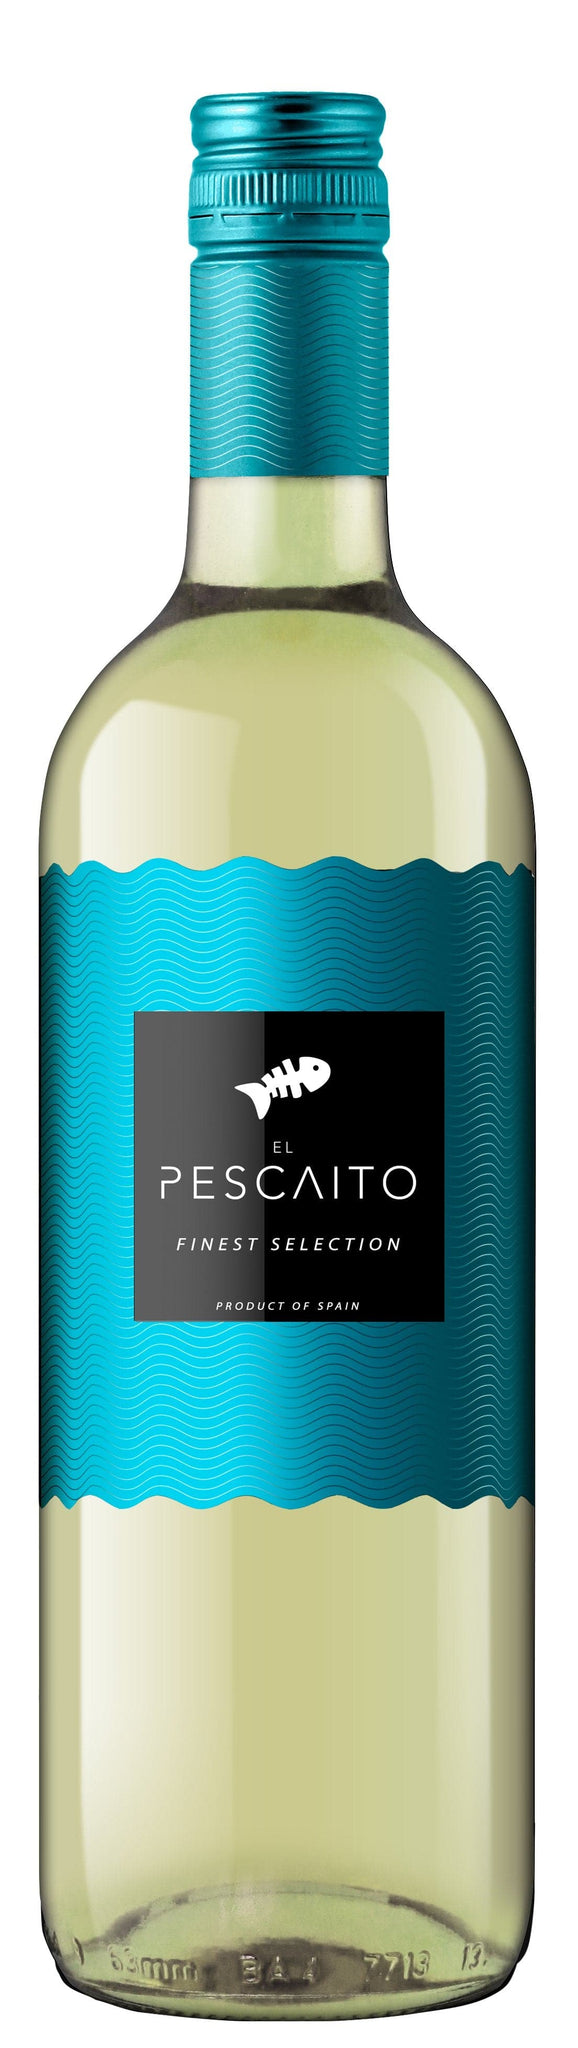 Купить - Вино Vicente El Pescaito Finest Selection Blanco 0.75л | VINTAGE